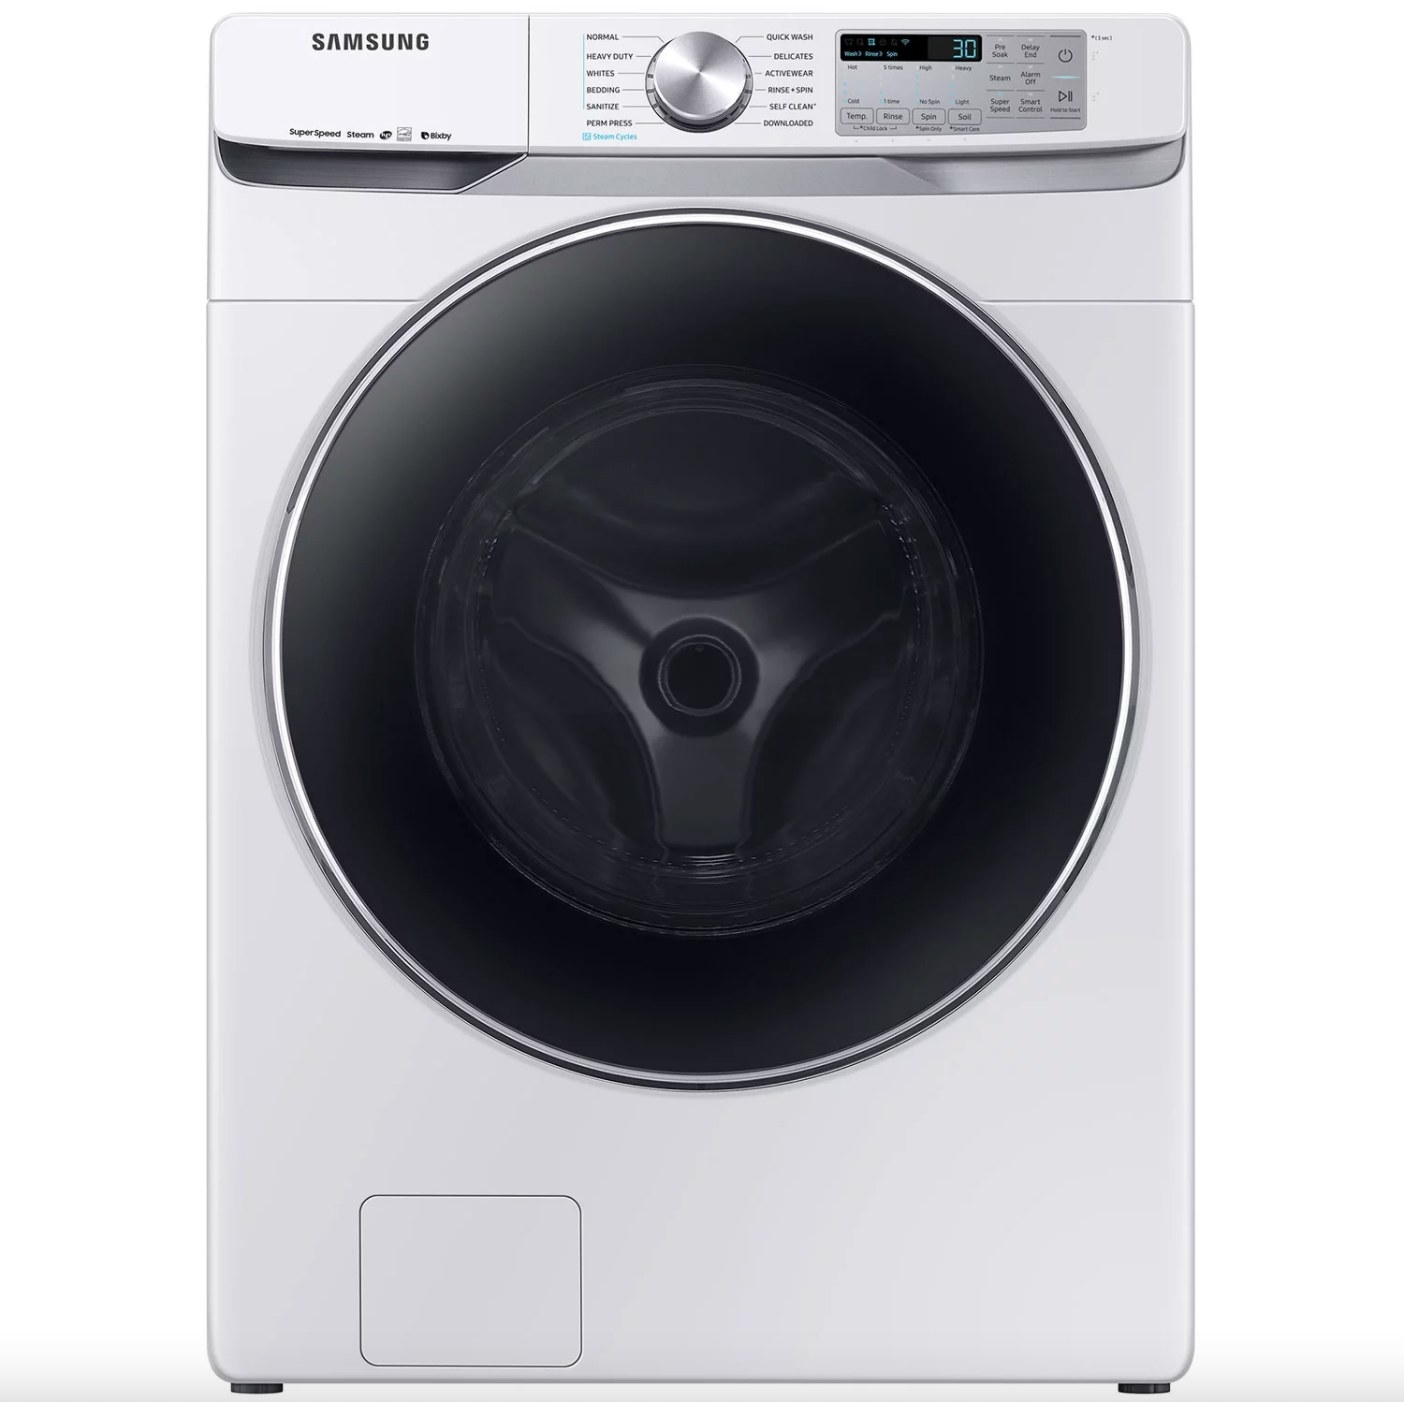 The front-load washing machine with super speed in white